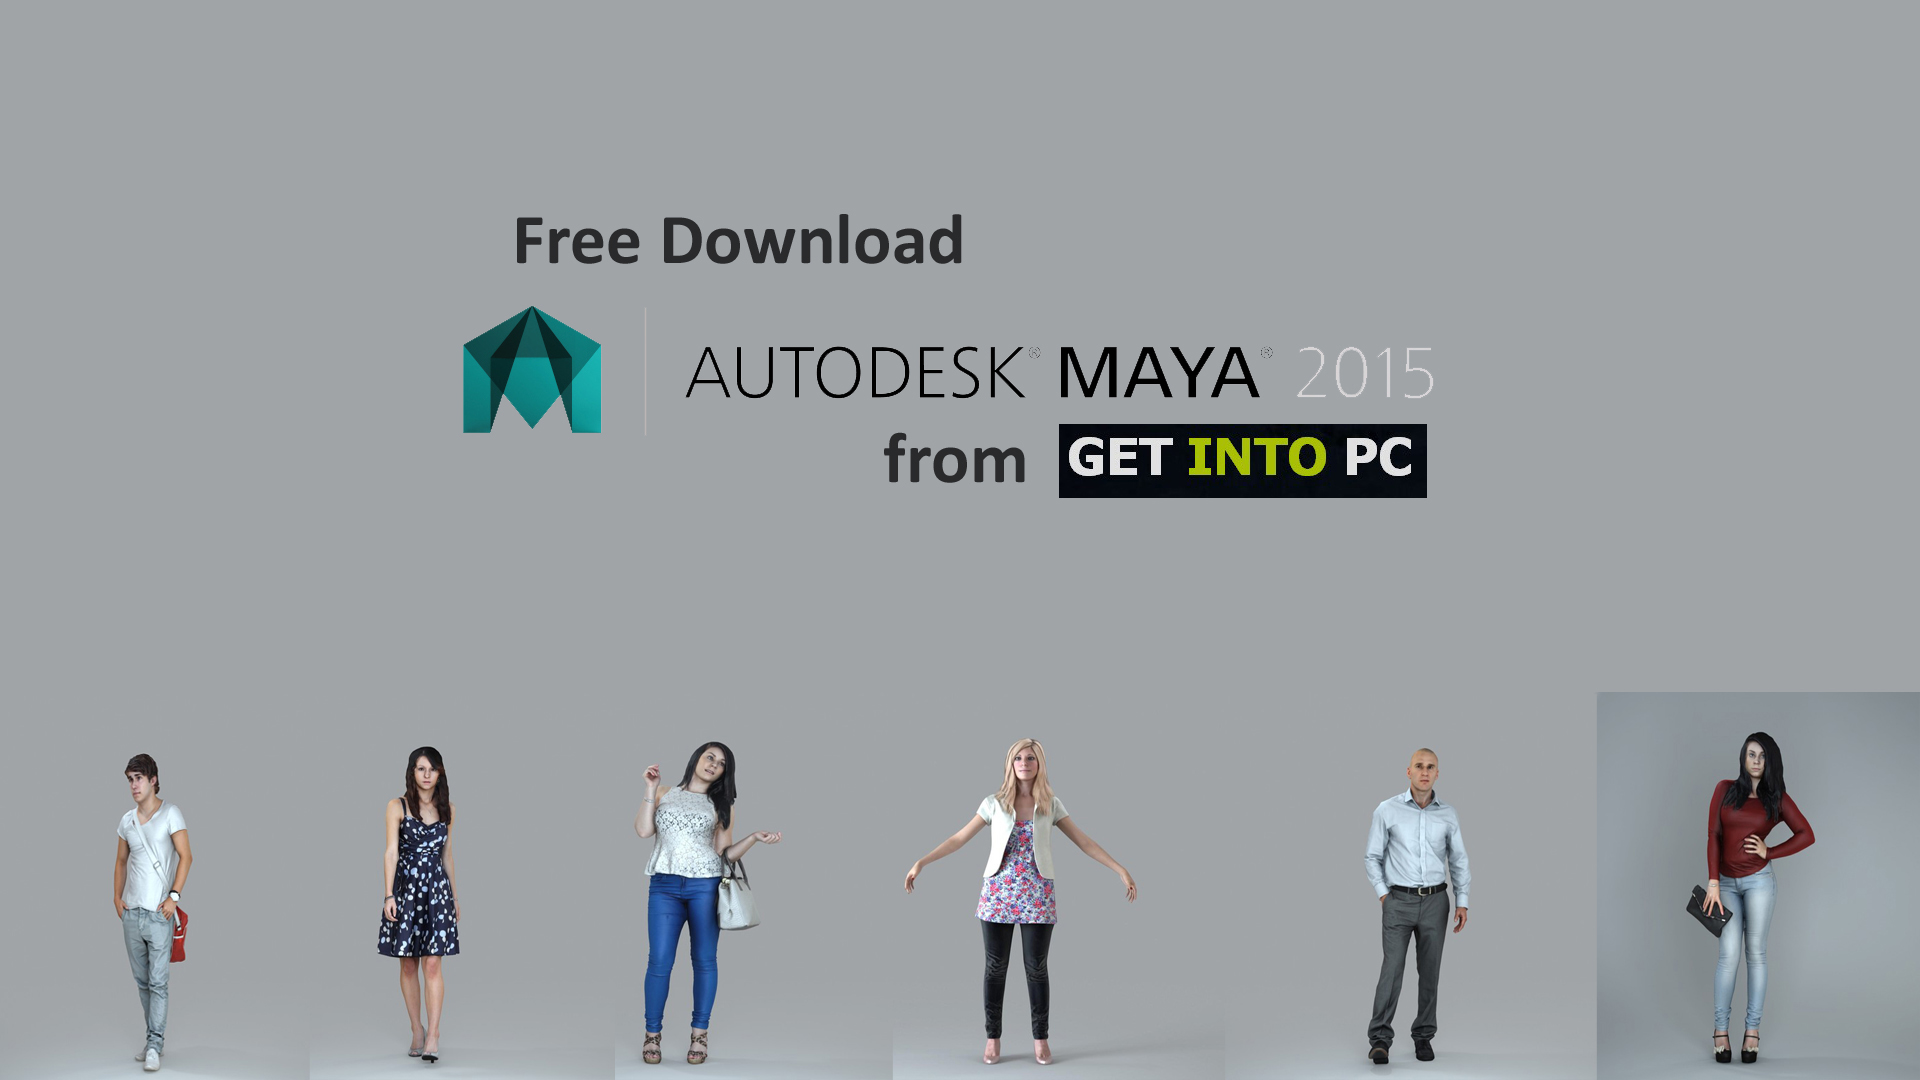 Autodesk Maya 2015 Download For Free